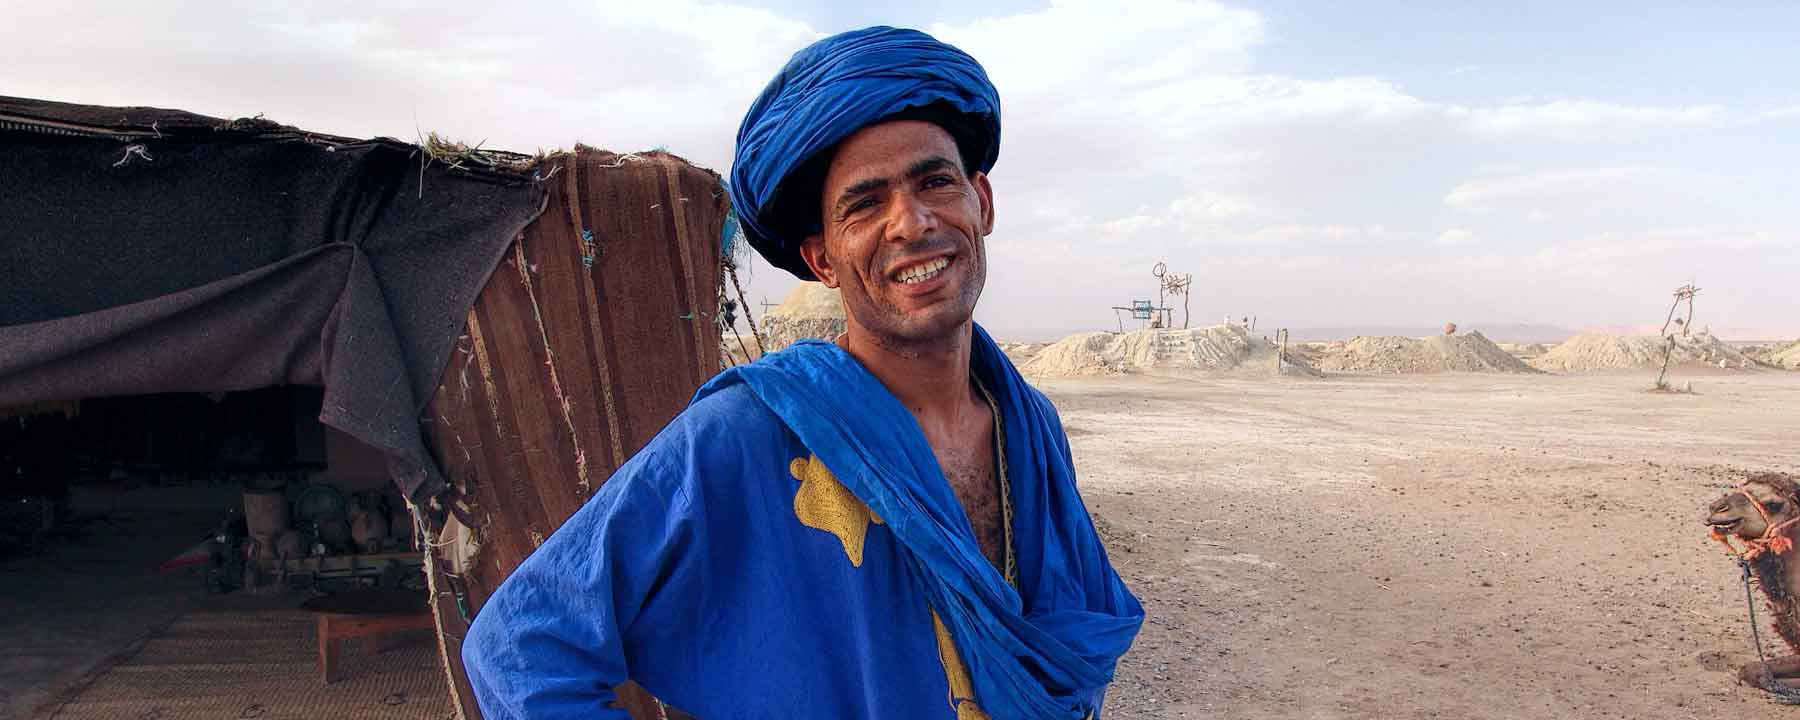 Morocco Sahara Wells Blue Man